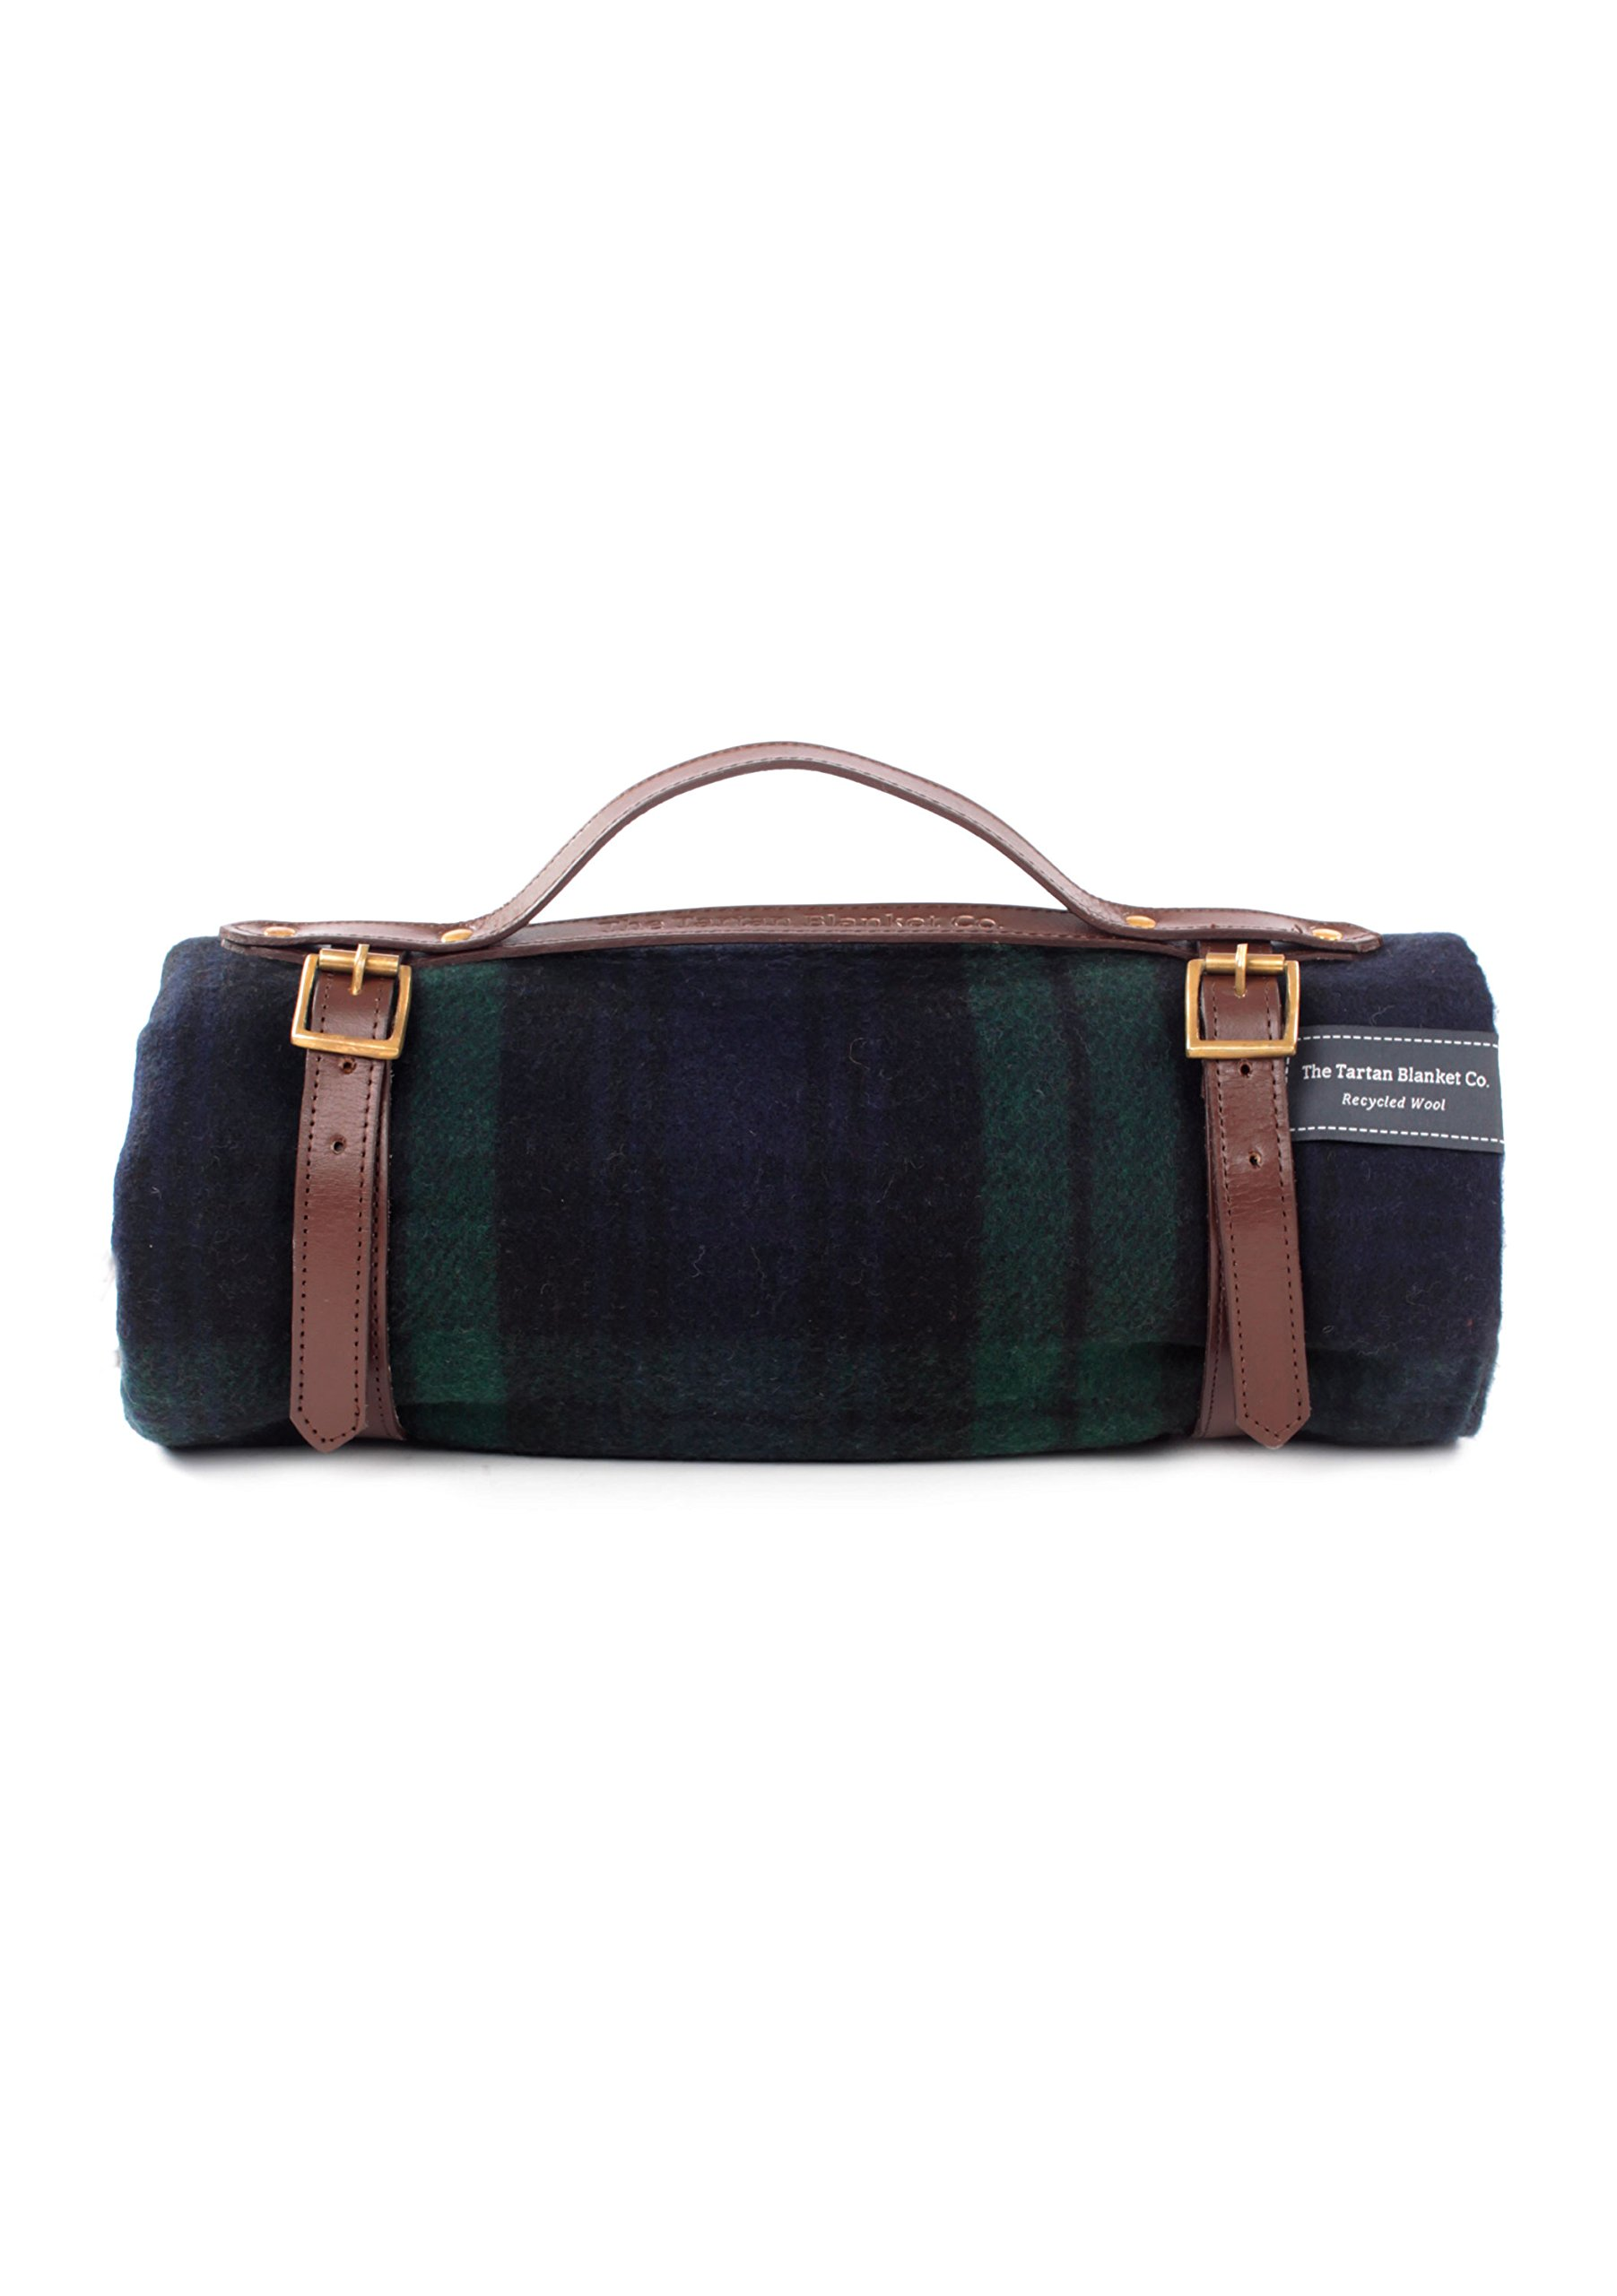 The Tartan Blanket Co. Recycled Wool Picnic Blanket with Brown Leather Strap (Black Watch) by The Tartan Blanket Co.